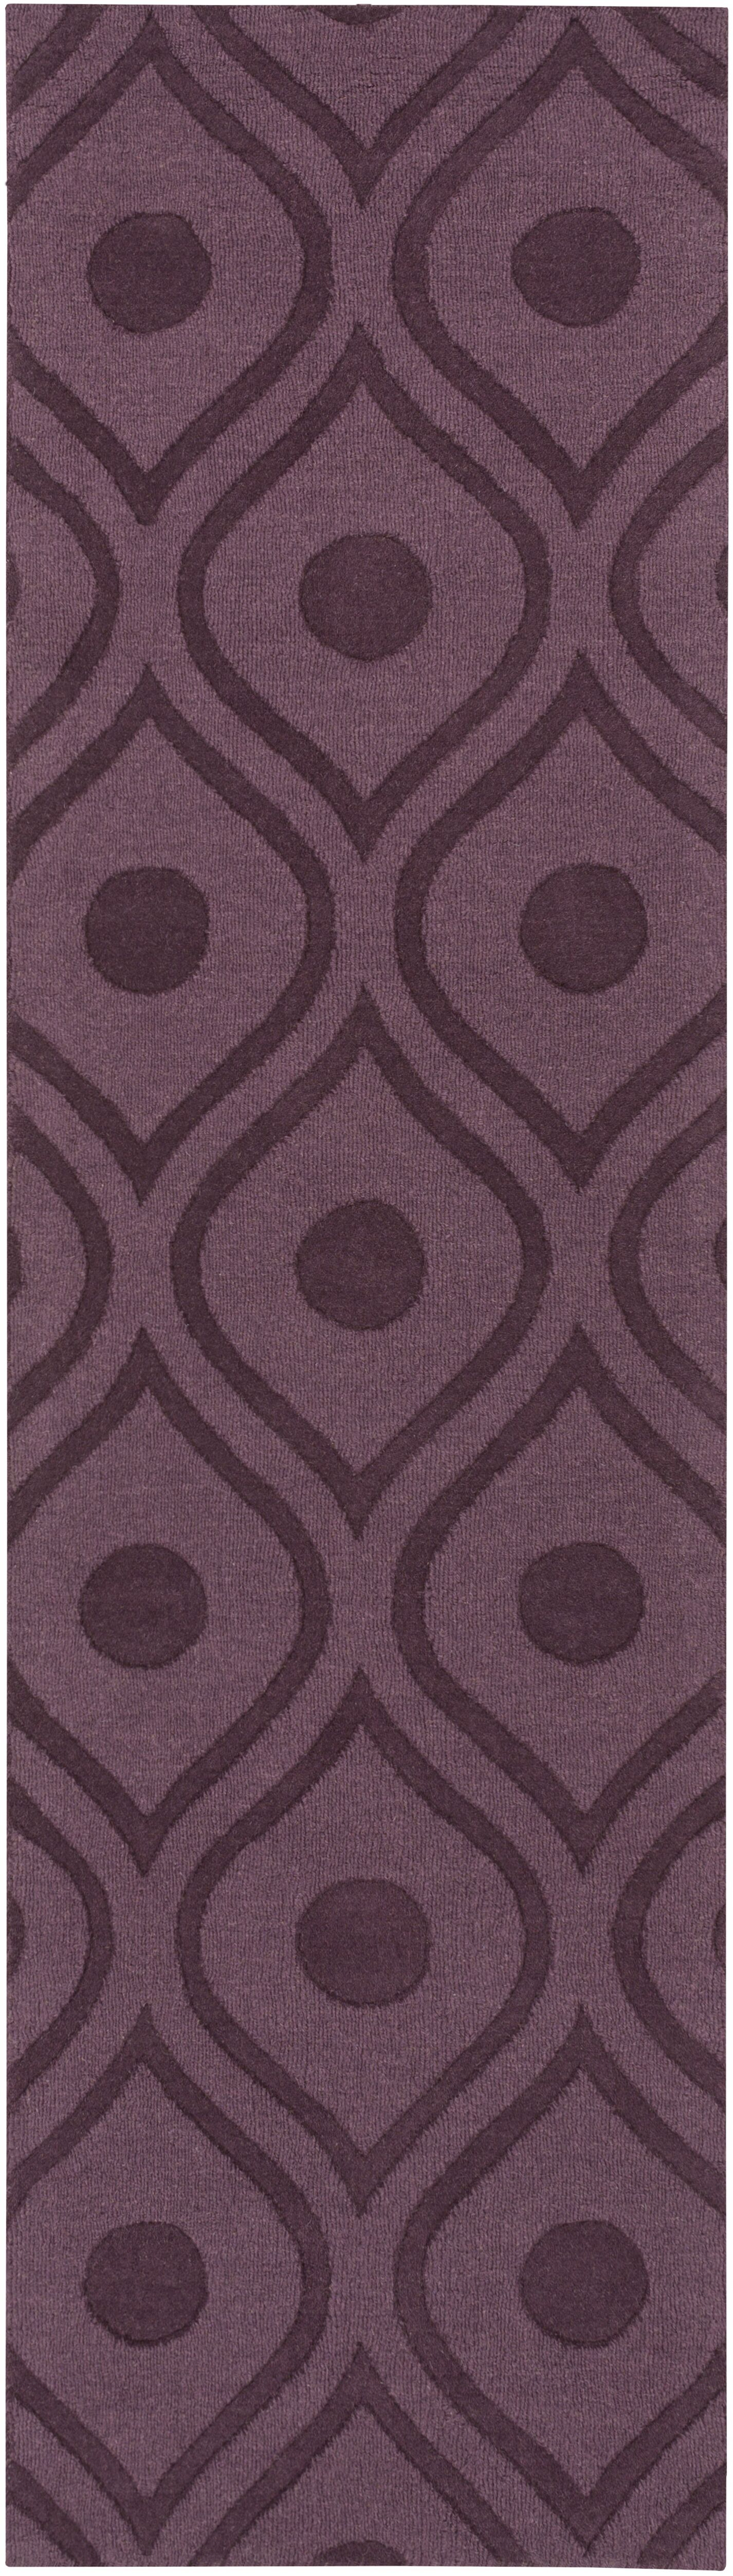 Castro Hand Woven Wool Purple Area Rug Rug Size: Runner 2'3